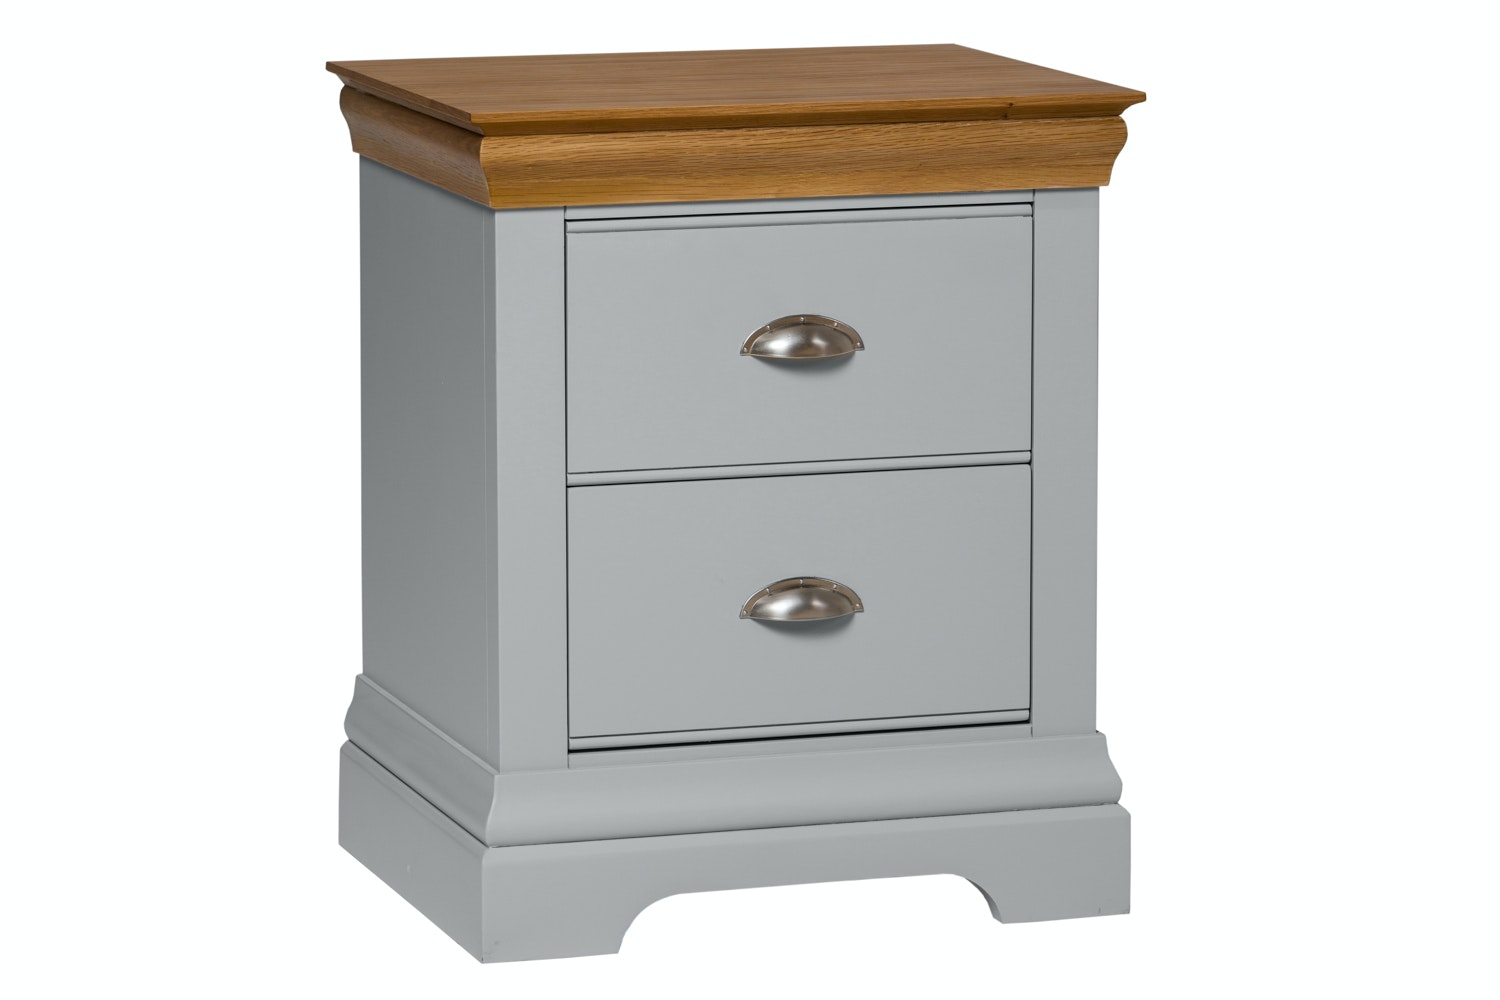 Ascott Bedside 2 Drawer | Colourtrend